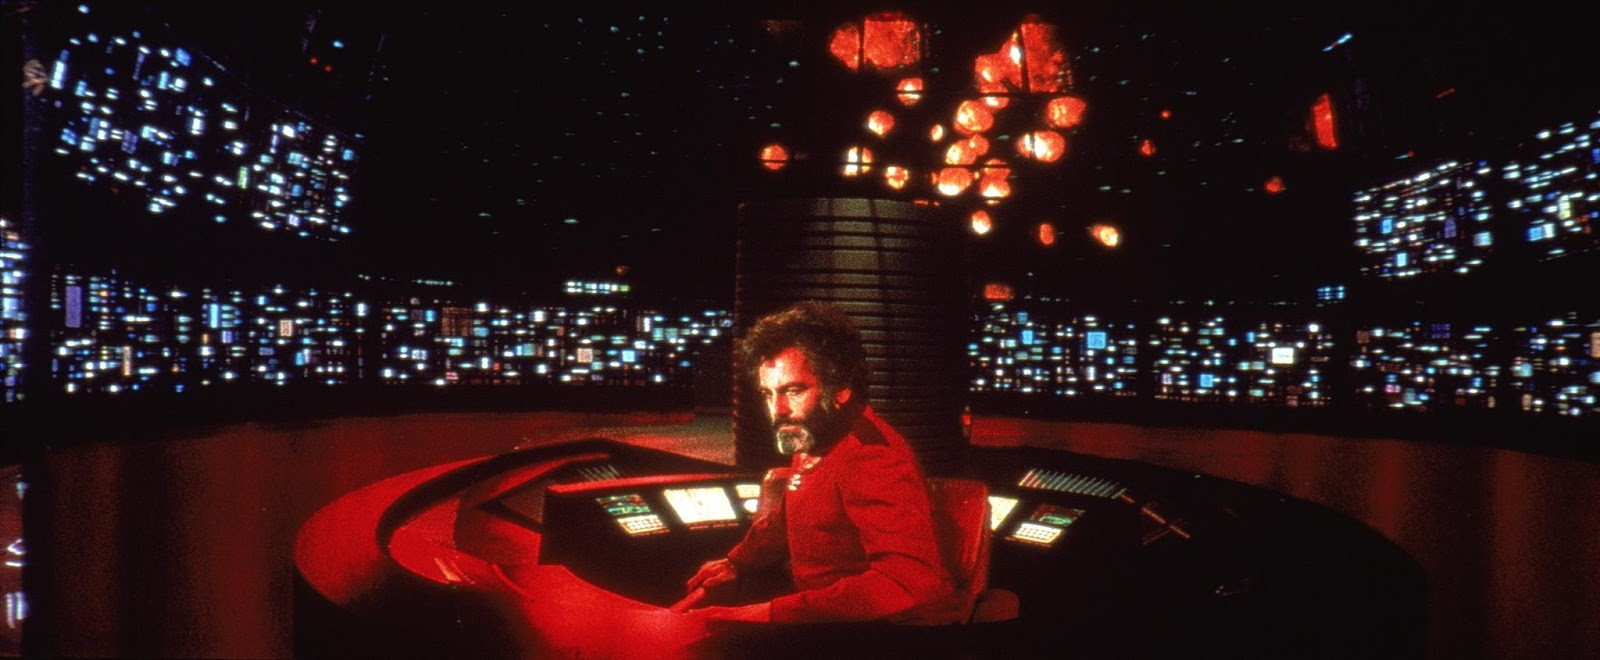 The Black Hole Maximilian Schell (page 3) - Pics about space